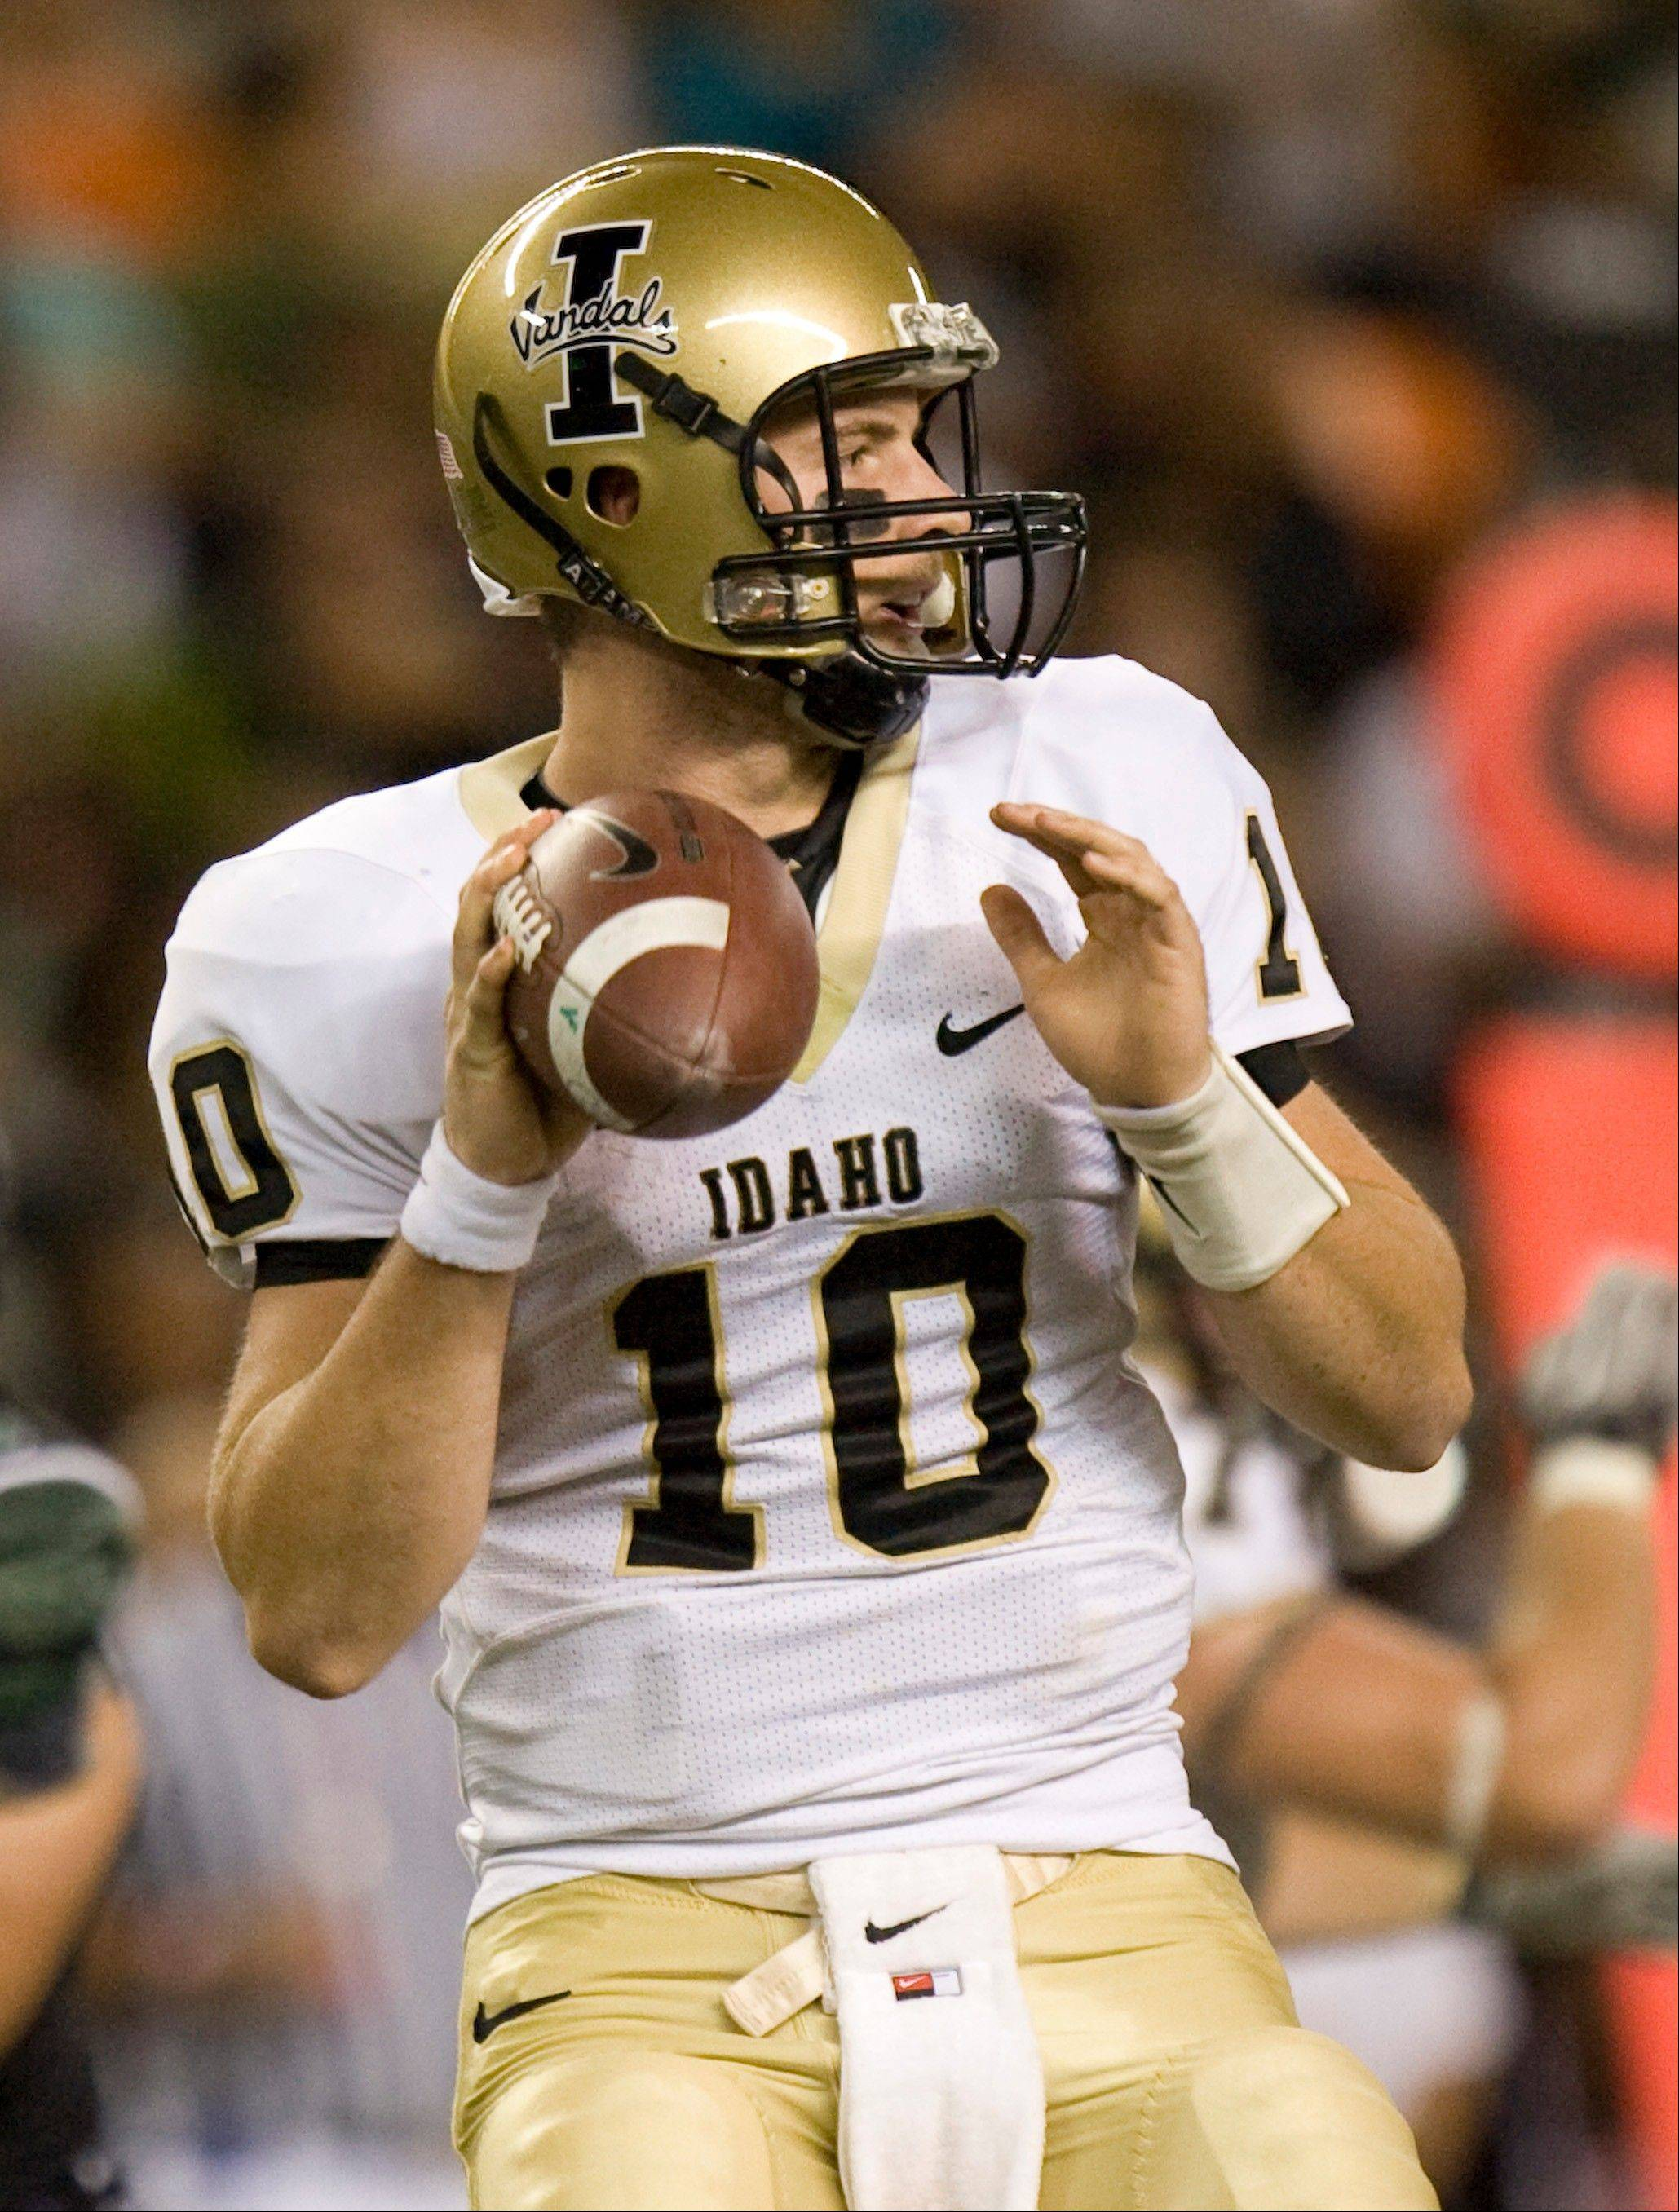 Idaho quarterback Nathan Enderle has signed a four-year contract with the Bears, who picked him in the fifth-round of the April's NFL Draft.